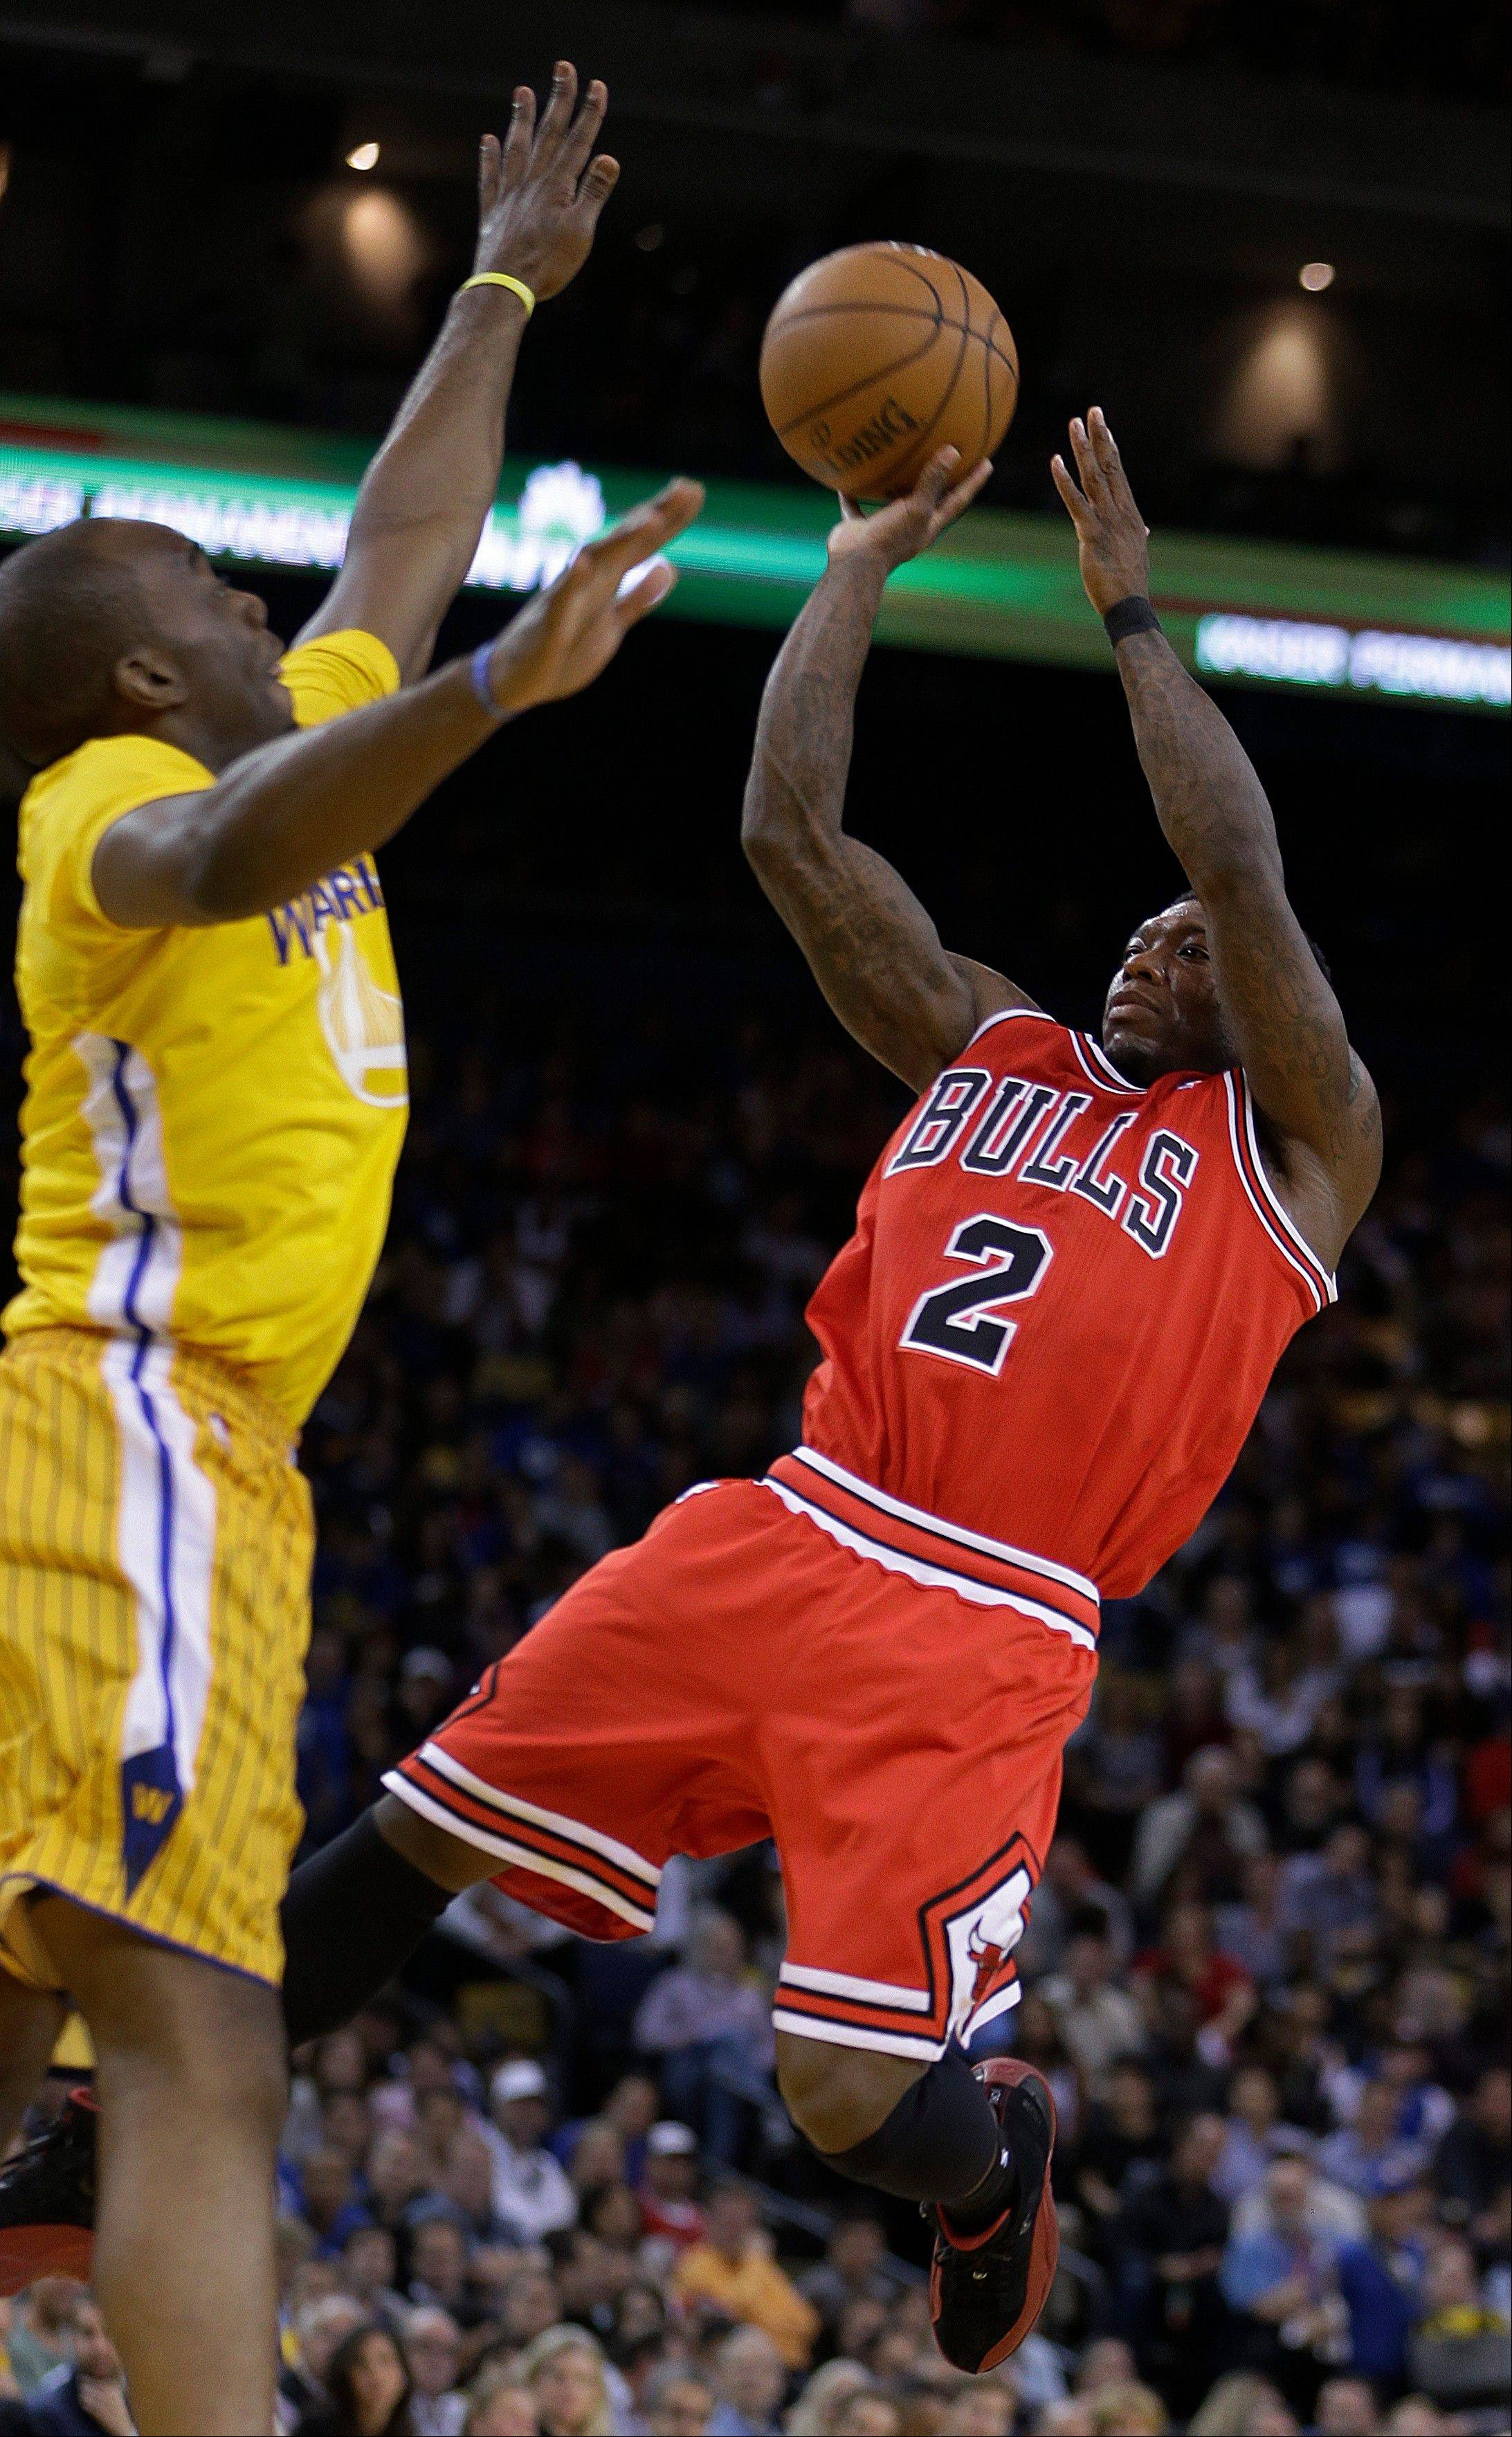 Chicago Bulls' Nate Robinson, right, shoots against Golden State Warriors' Carl Landry during the first half of an NBA basketball game Friday, March 15, 2013, in Oakland, Calif.